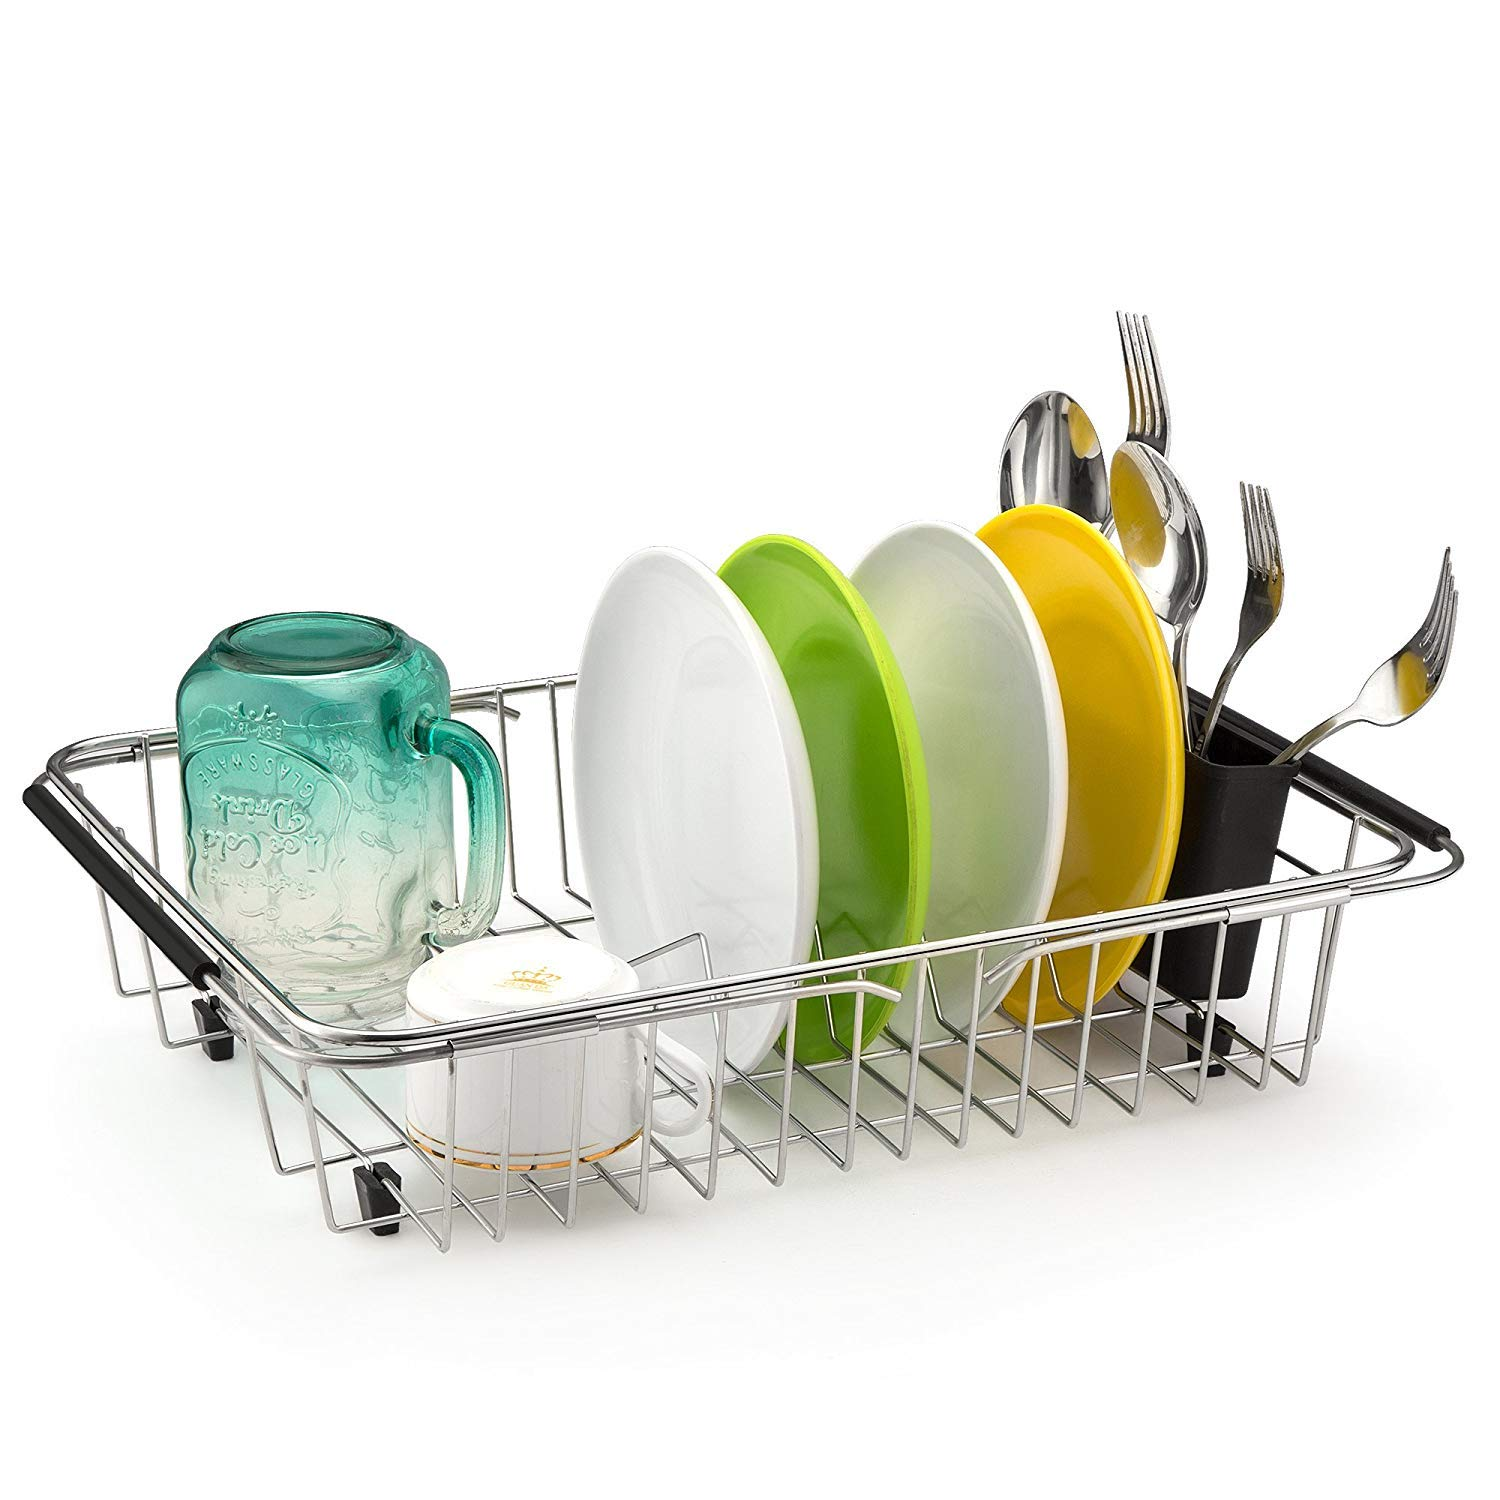 Amazon.com: ARCCI Expandable Dish Drying Rack with ...